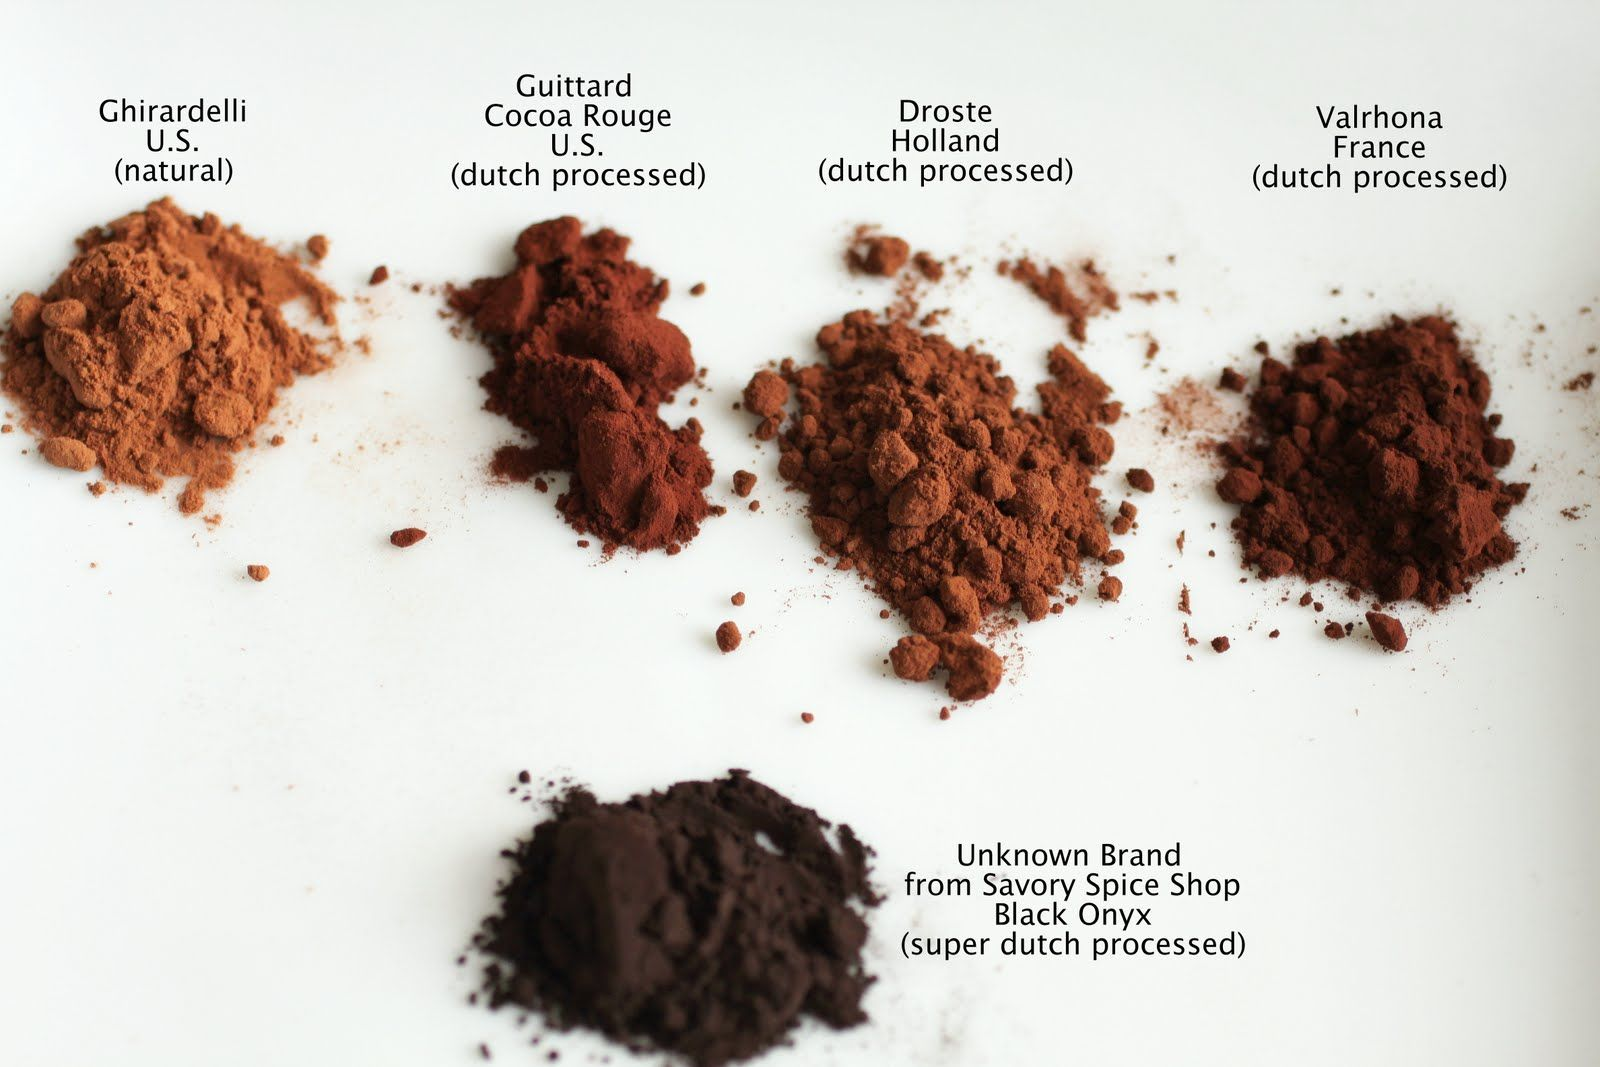 Types of chocolate | Savory spice shop, Spice shop, Cocoa